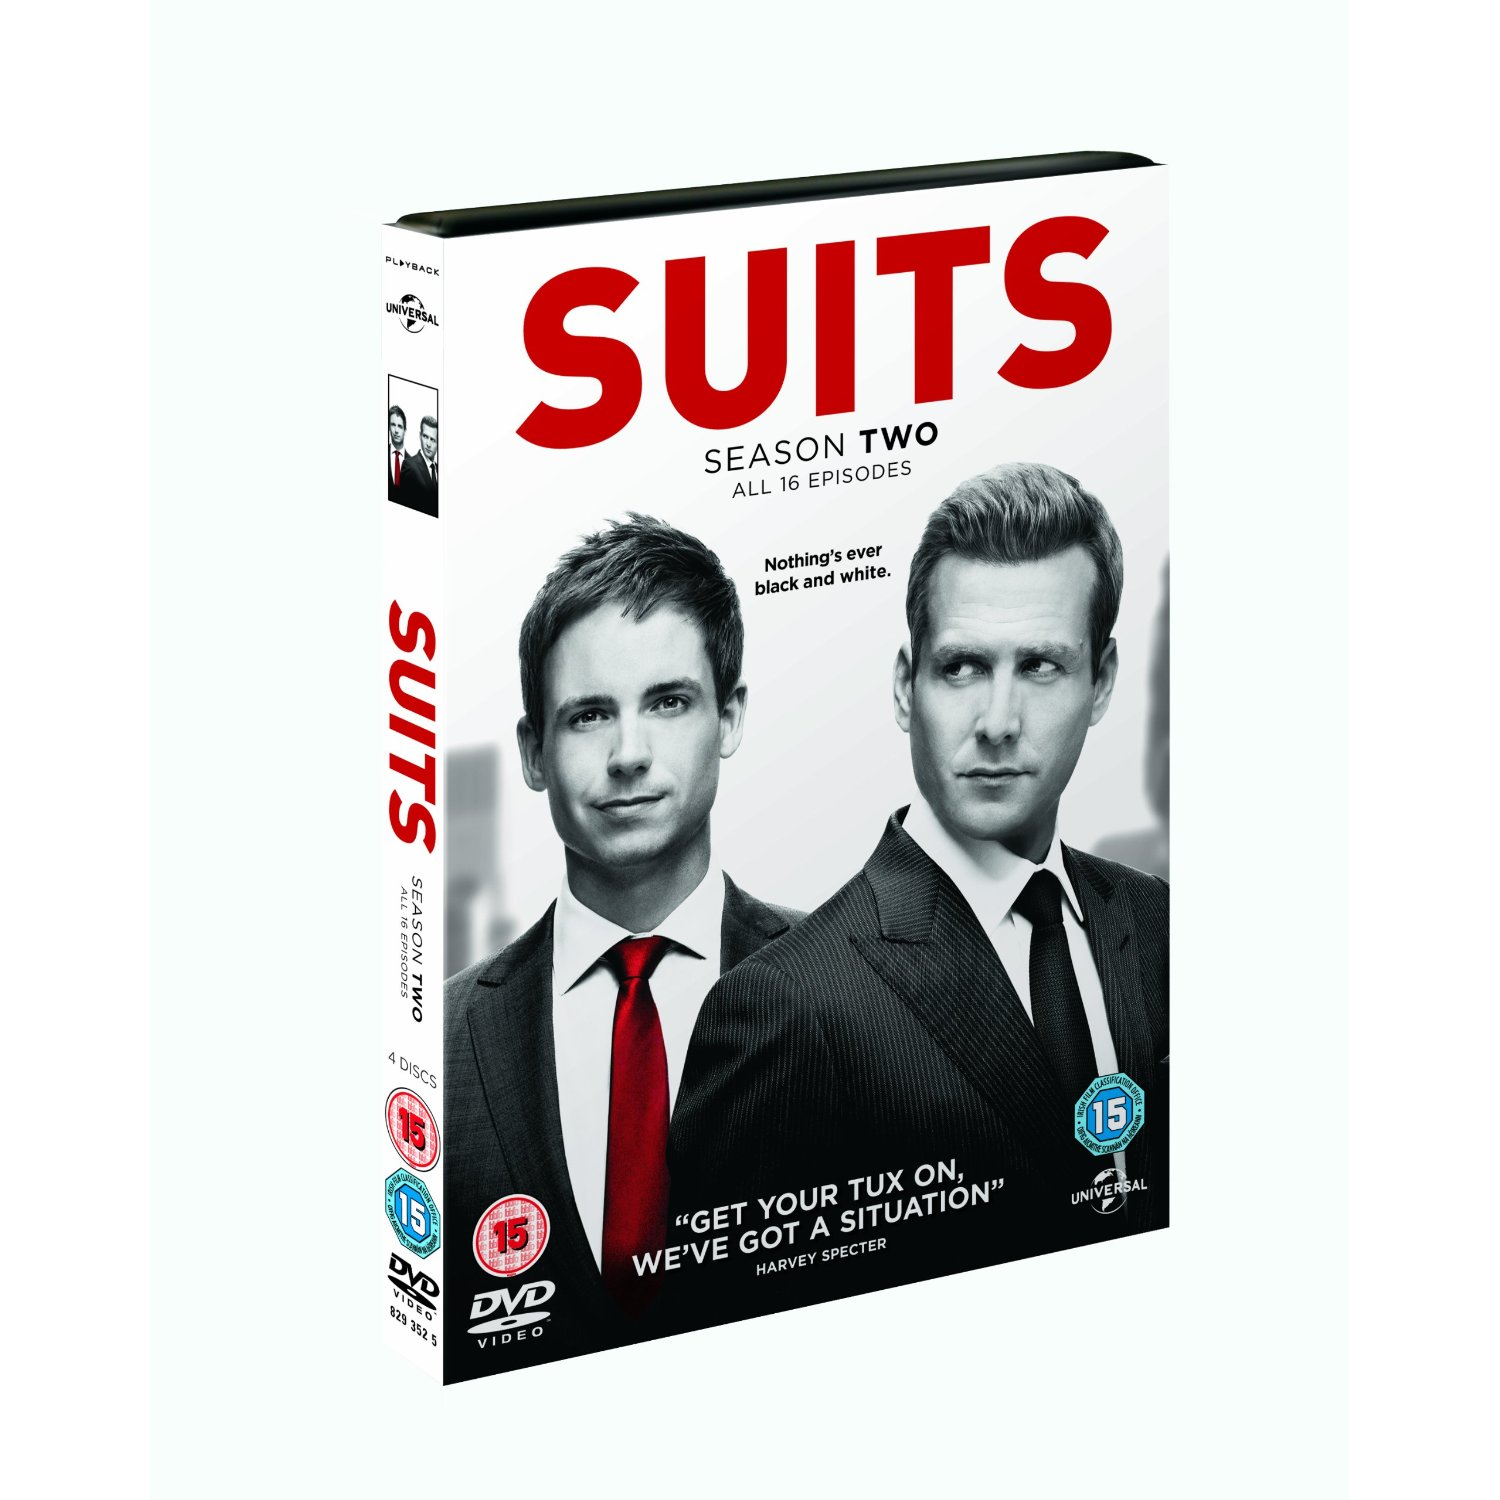 Suits S2 DVD - Warner Video - Film - UNIVERSAL PICTURES - 5050582935257 - 13/5-2013